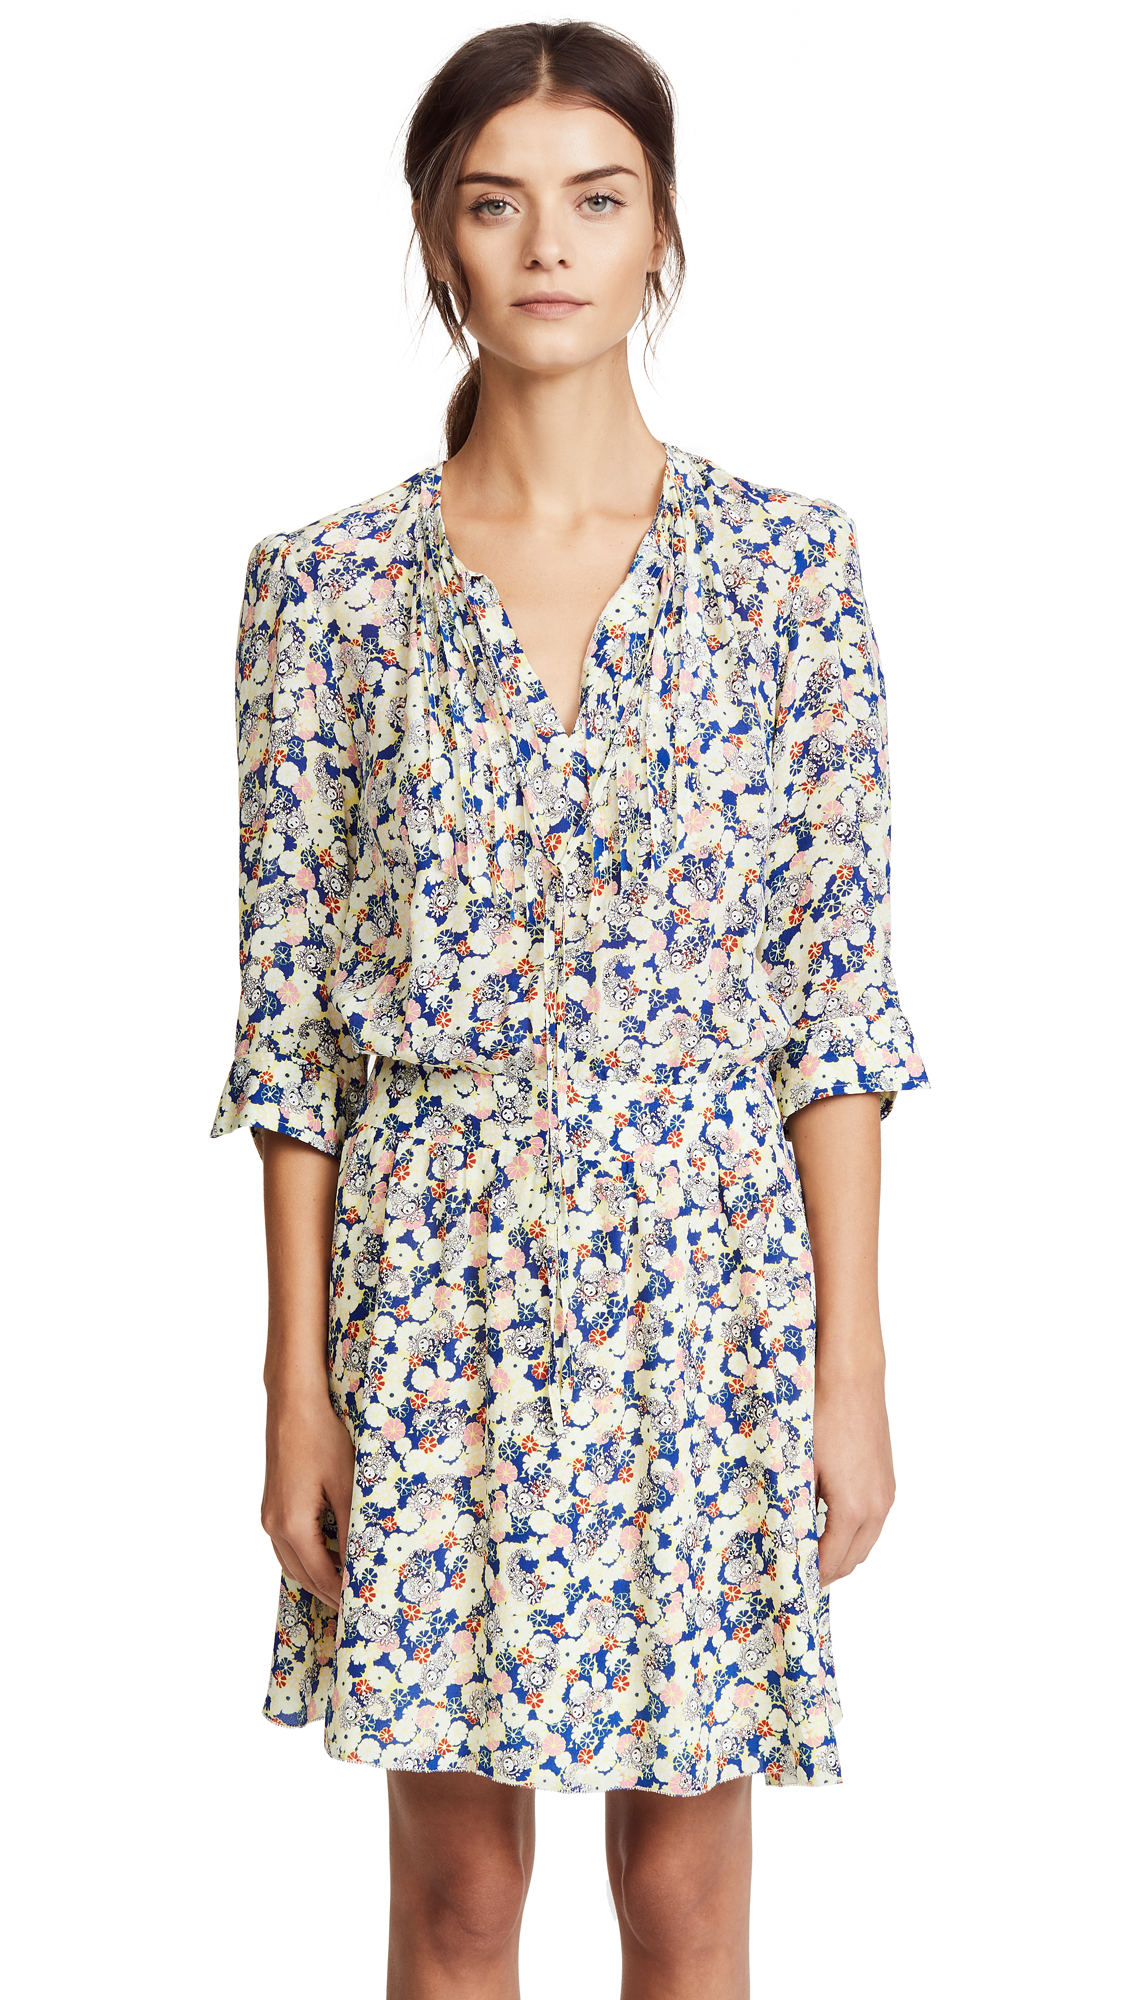 Shopbop Remus Zadig Flower Dress amp; Voltaire 1qpxwPRp